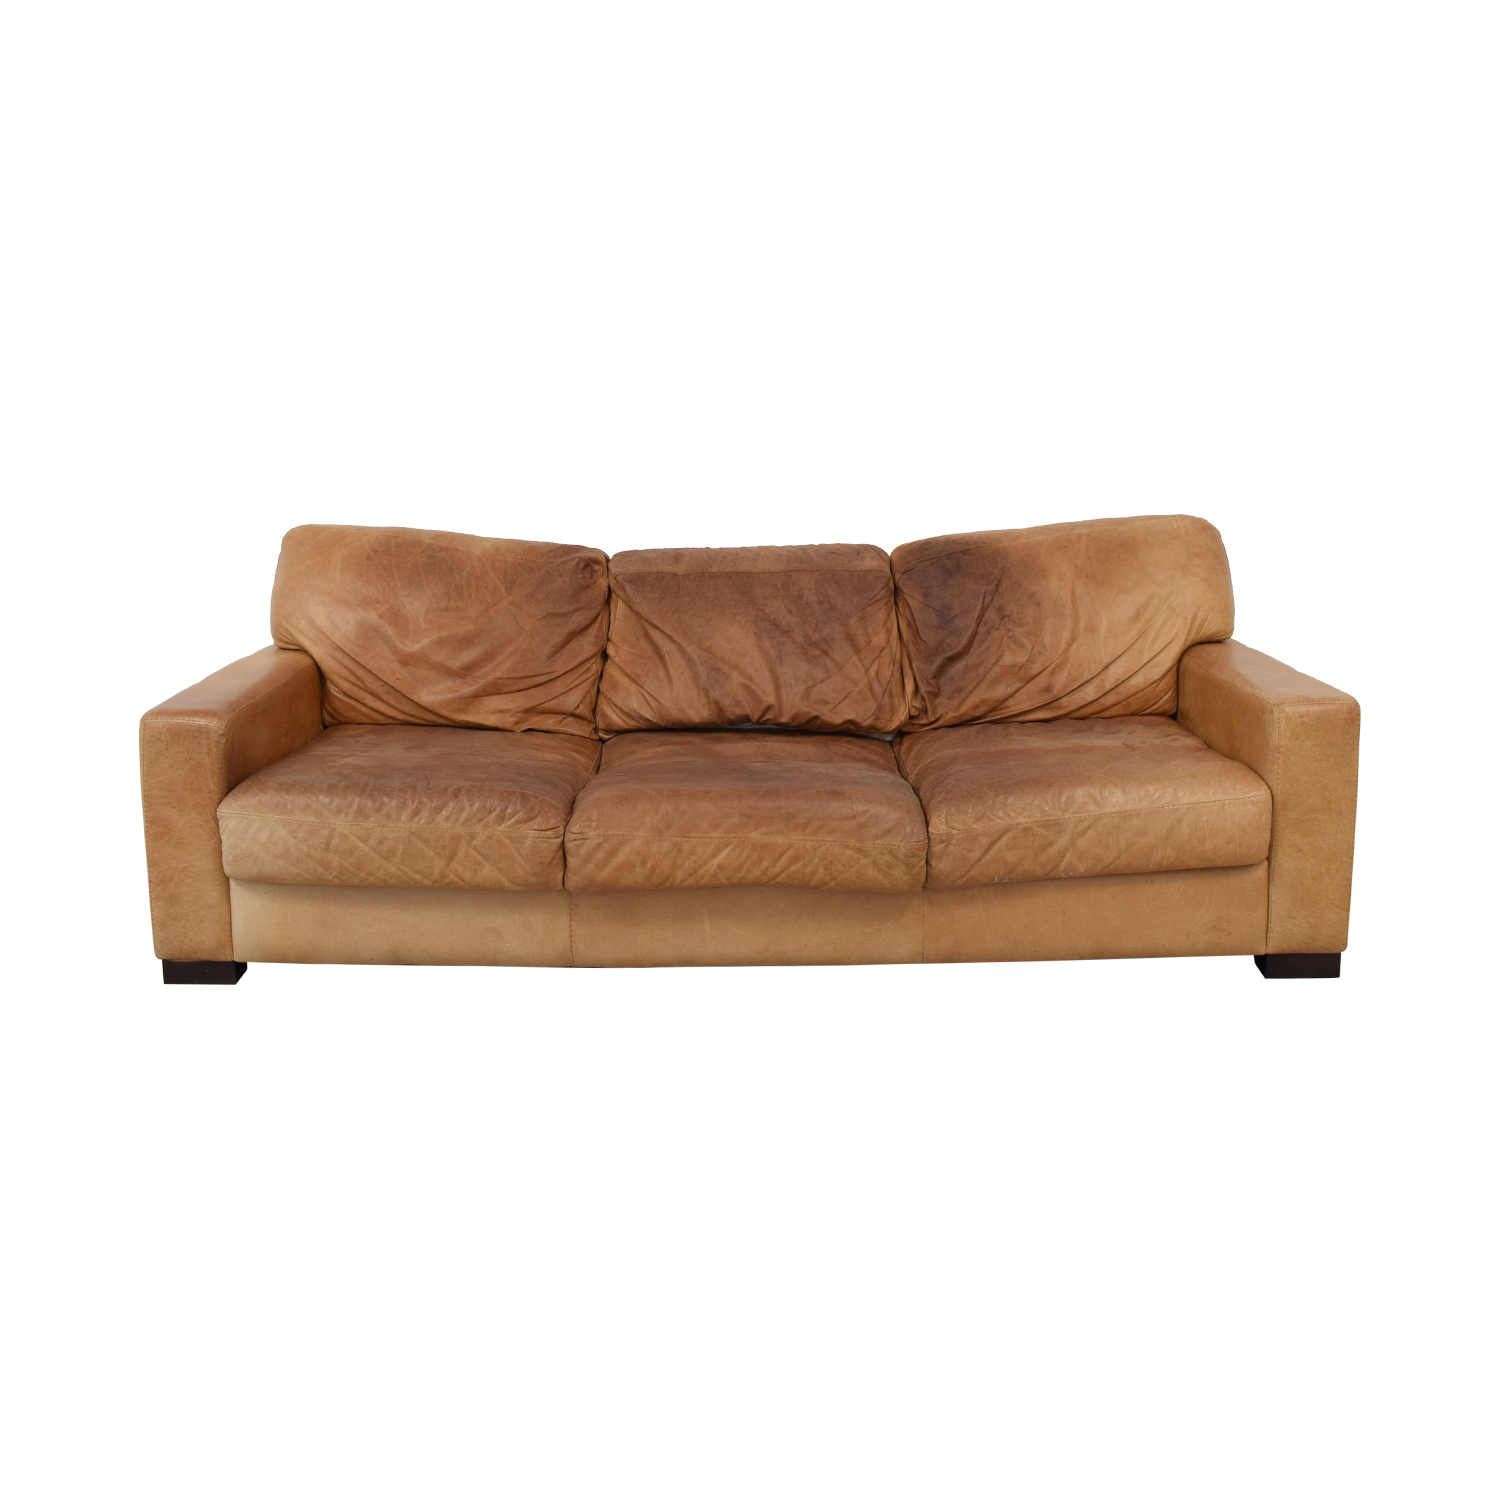 Softline Softline Three Seater Sofa second hand